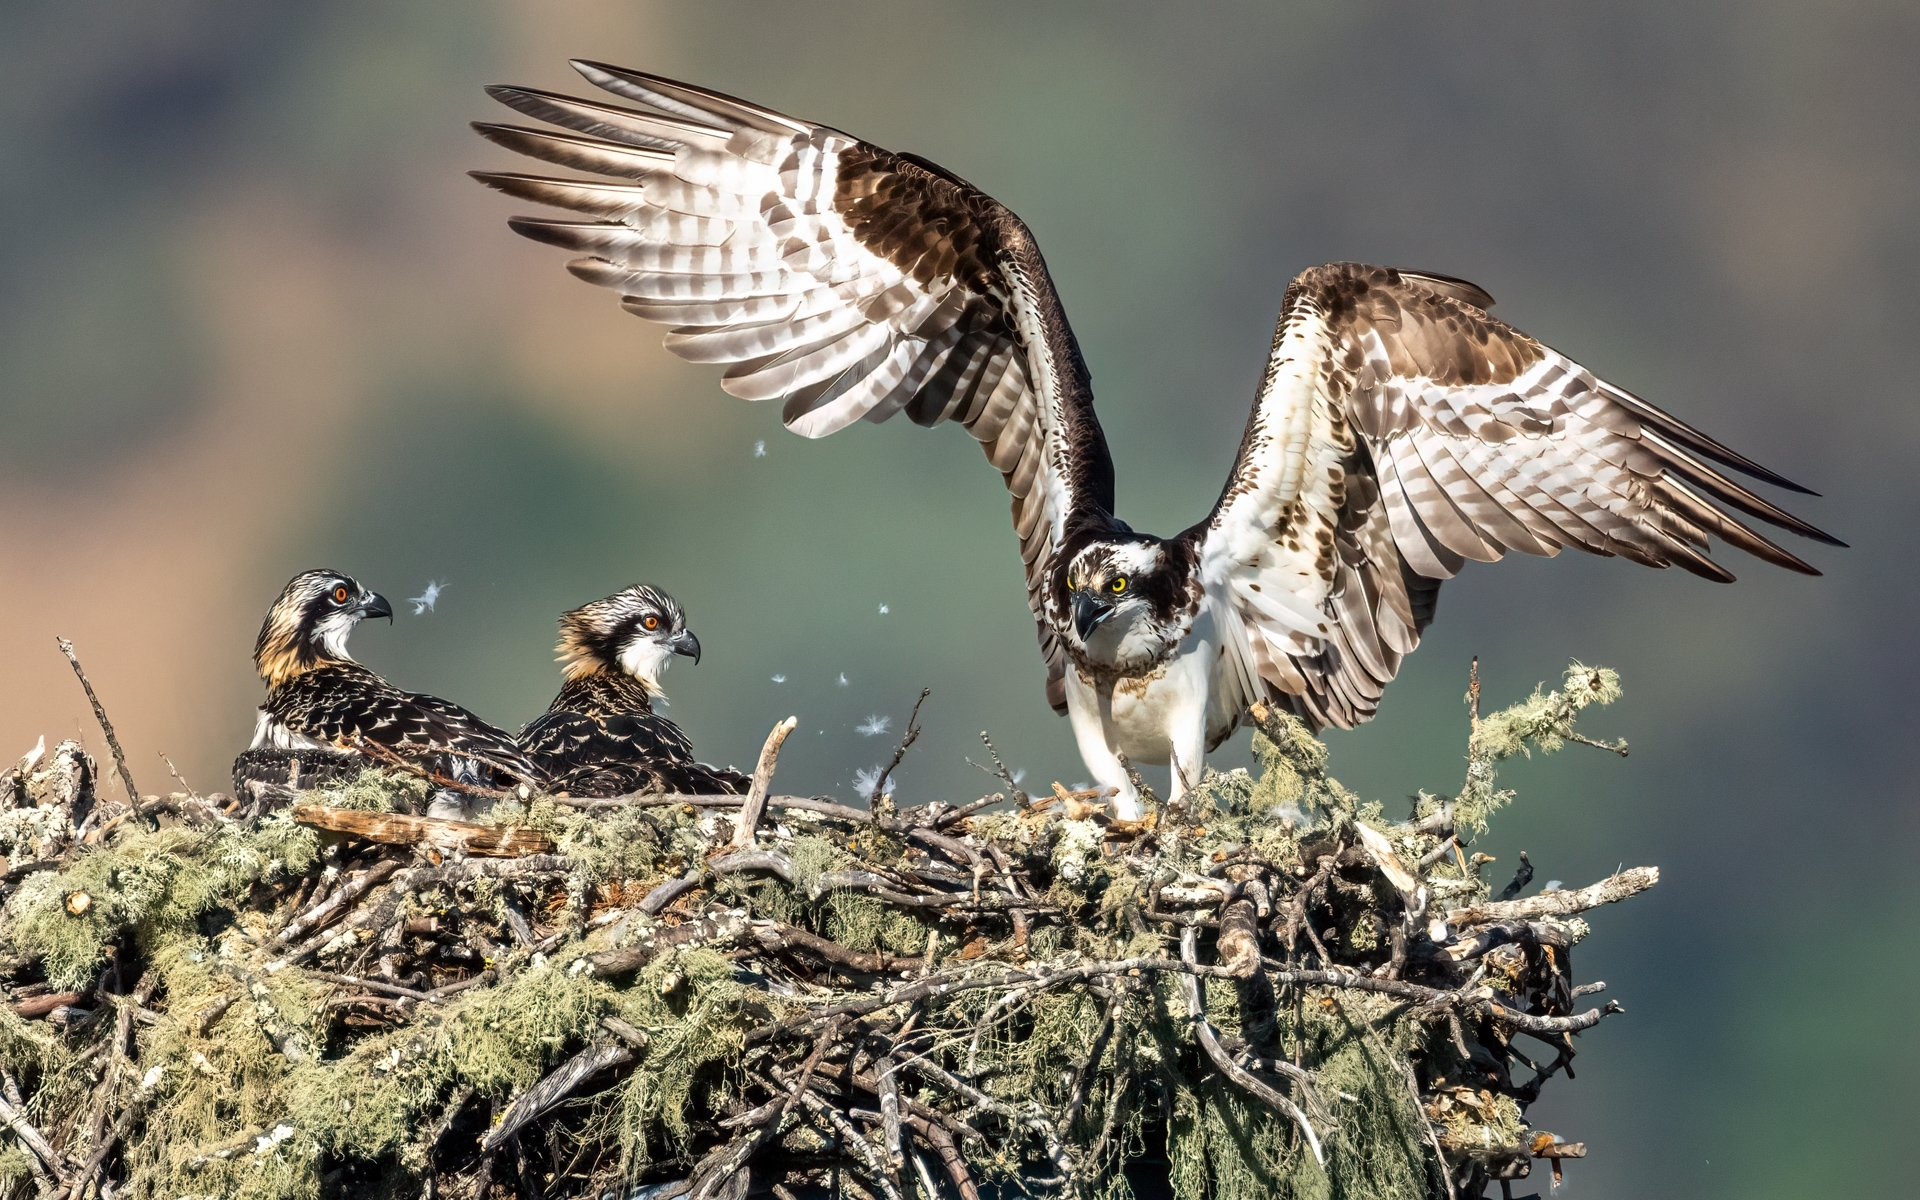 Osprey-Family-2-One-sibling-tests-out-its-wings-as-it-learns-to-fly-NM-Place-by-Jerry-Meshulam-SR